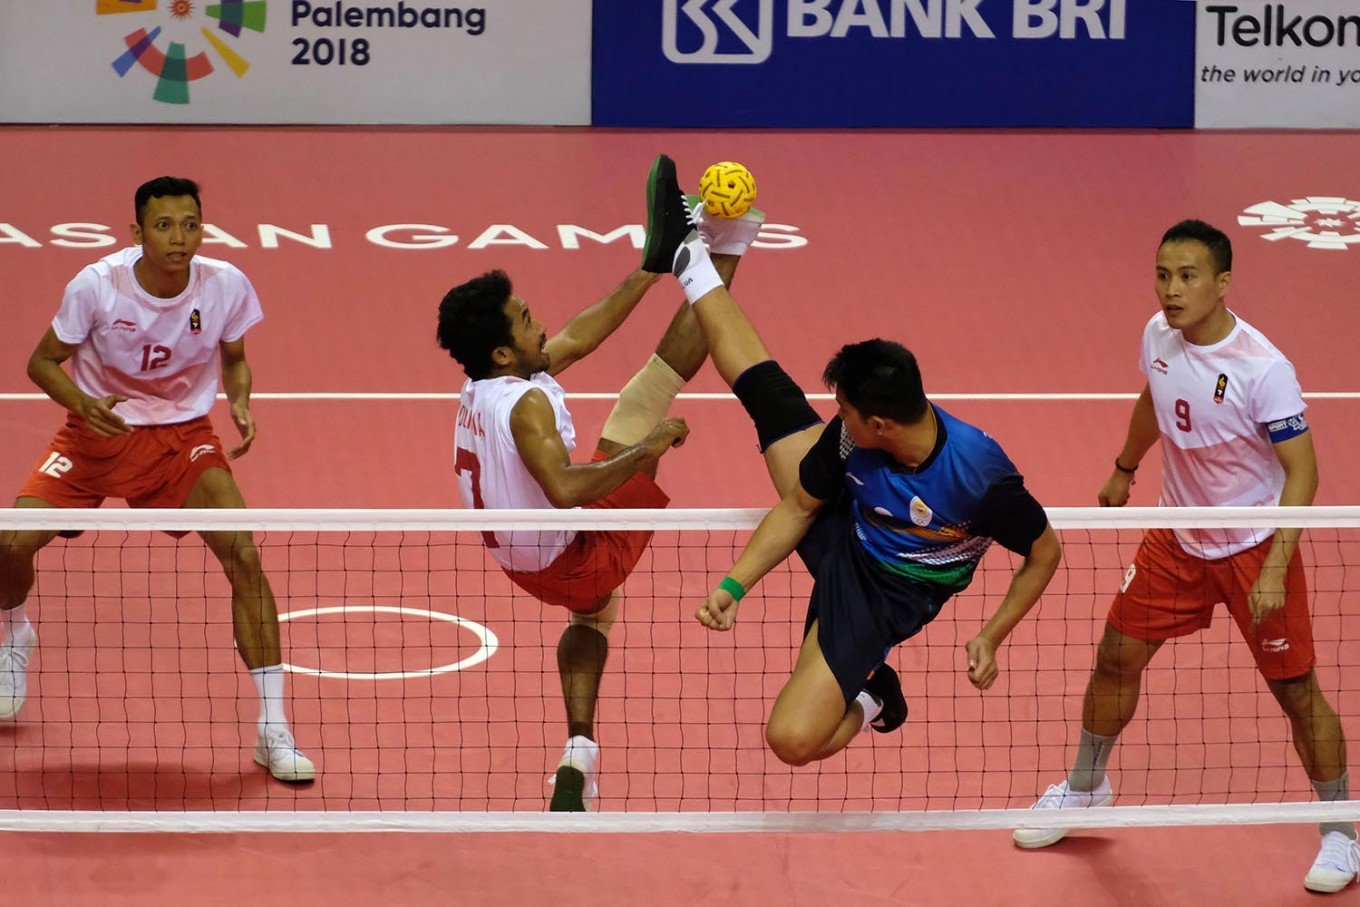 Asian Games Indonesias Protest Left Unaddressed Sports The Jakarta Post